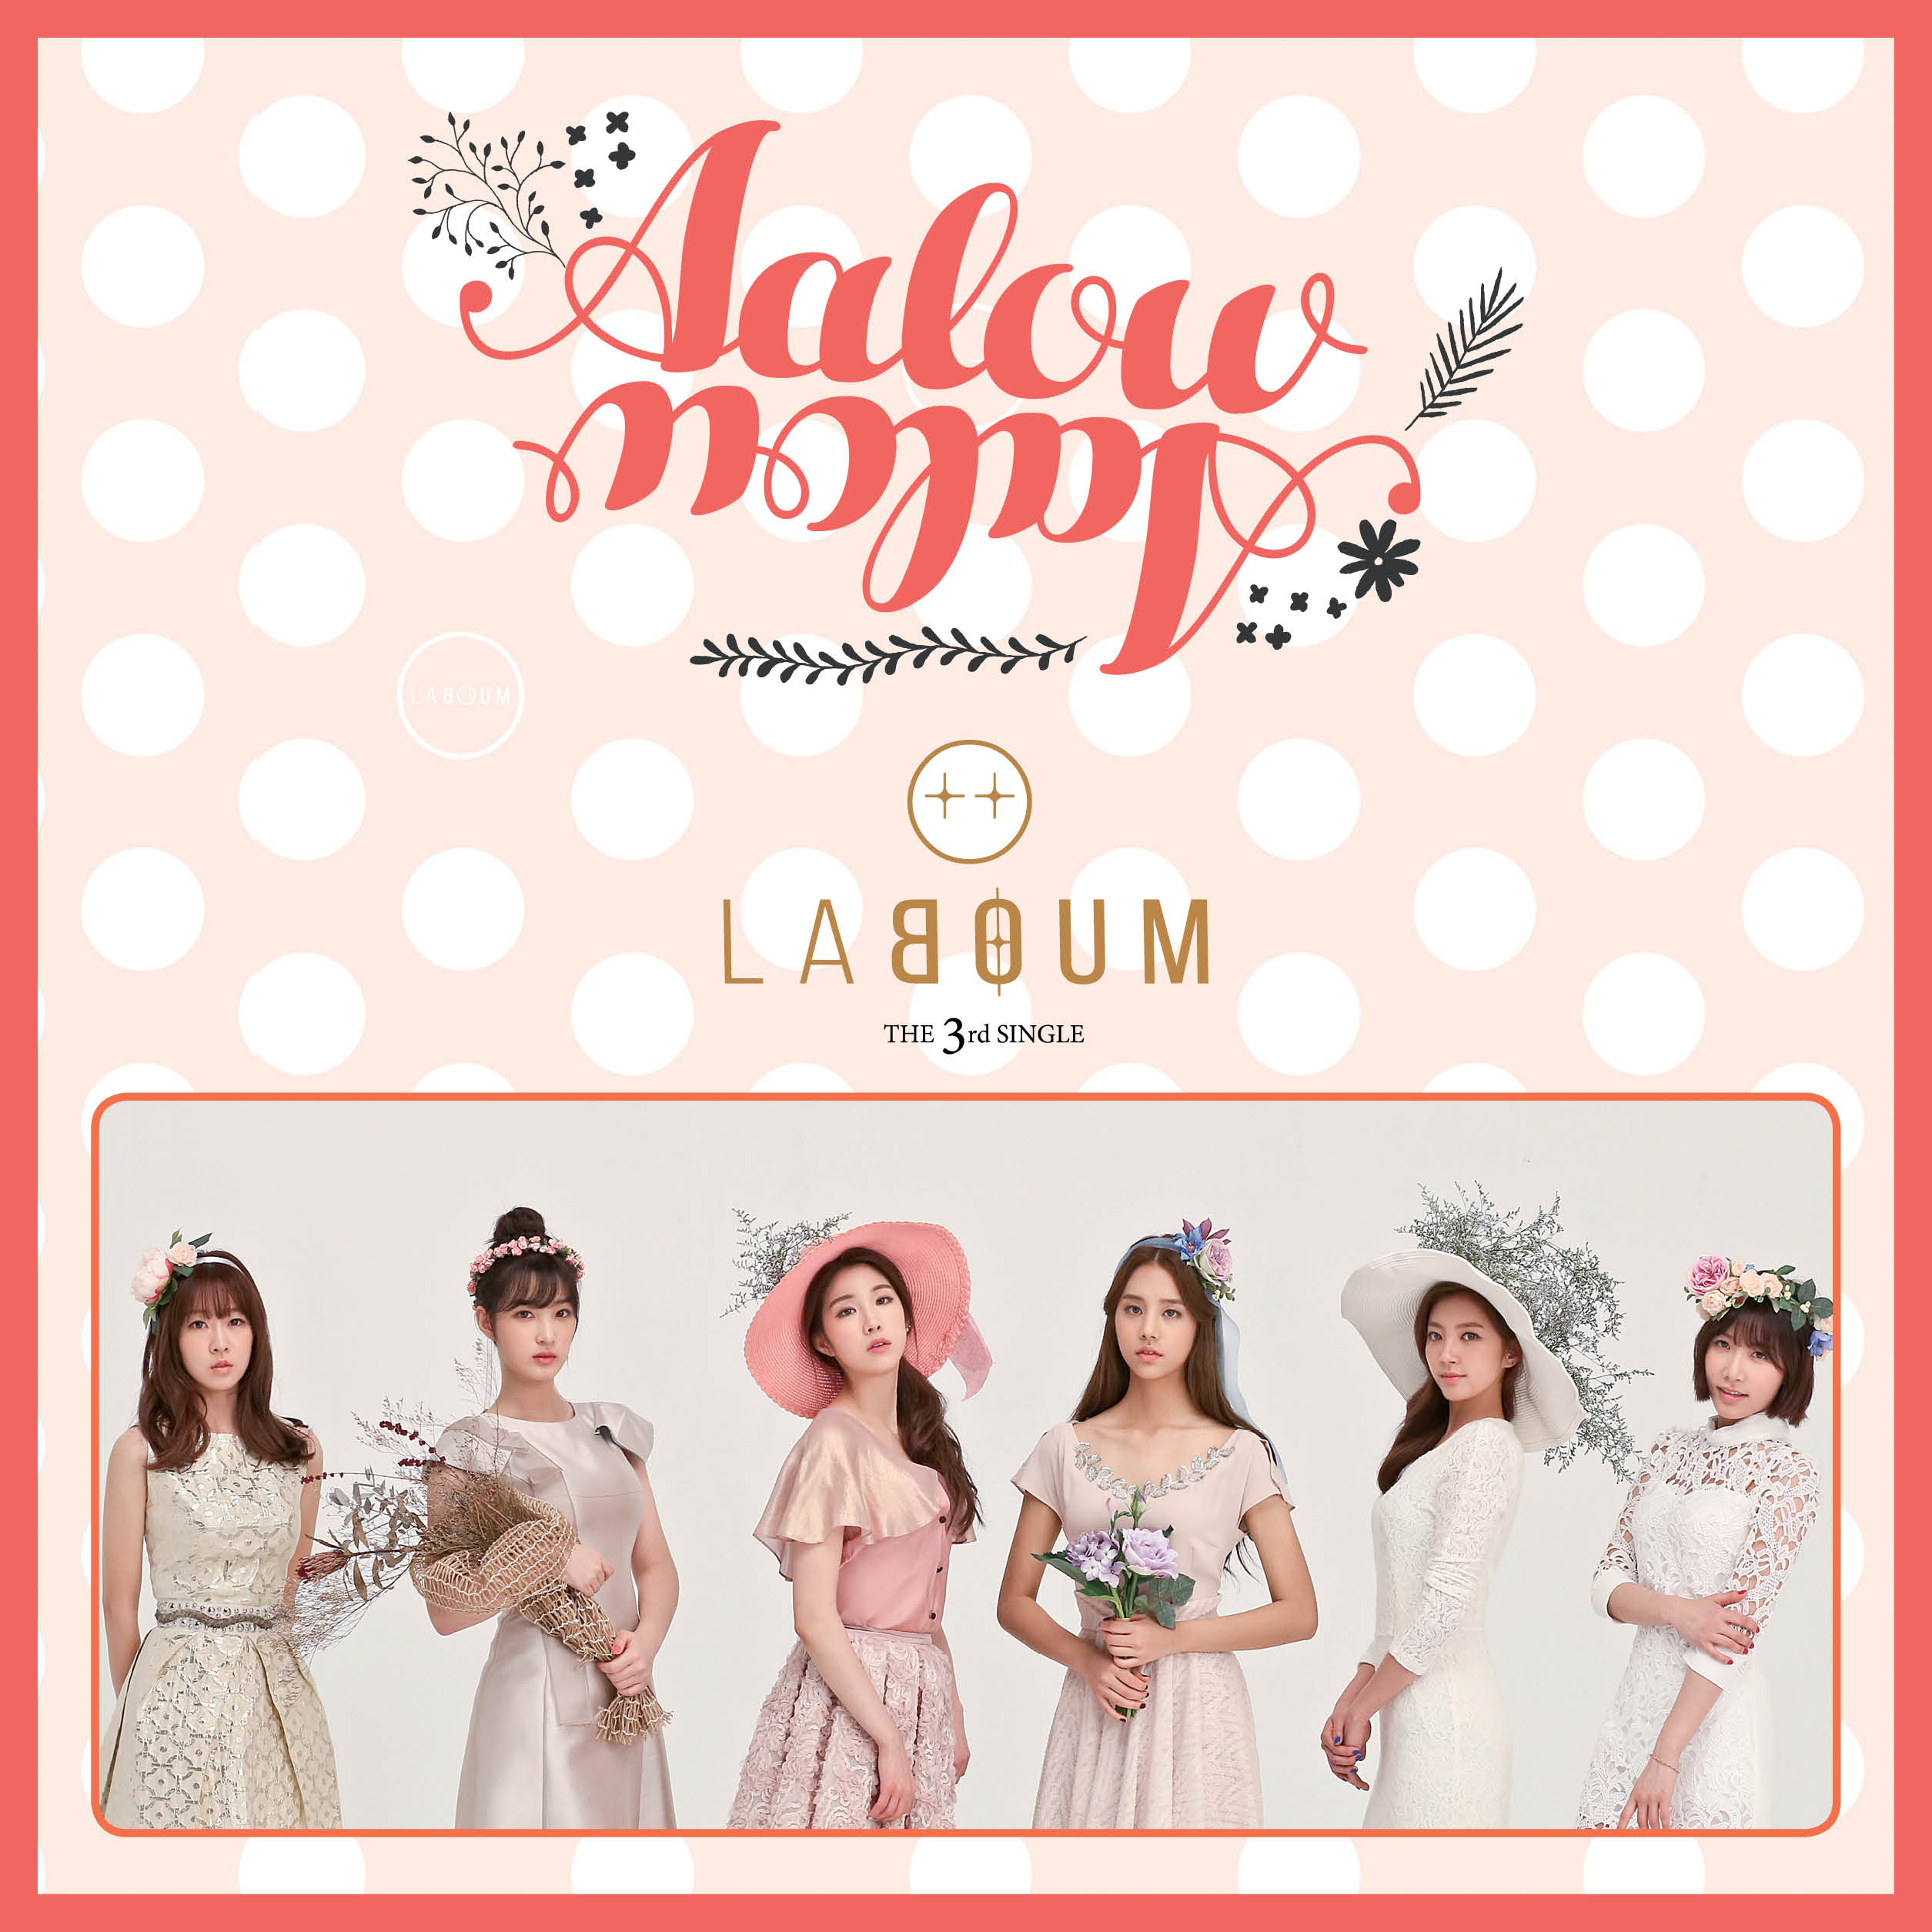 Laboum - Aalow Aalow K2Ost free mp3 download korean song kpop kdrama ost lyric 320 kbps